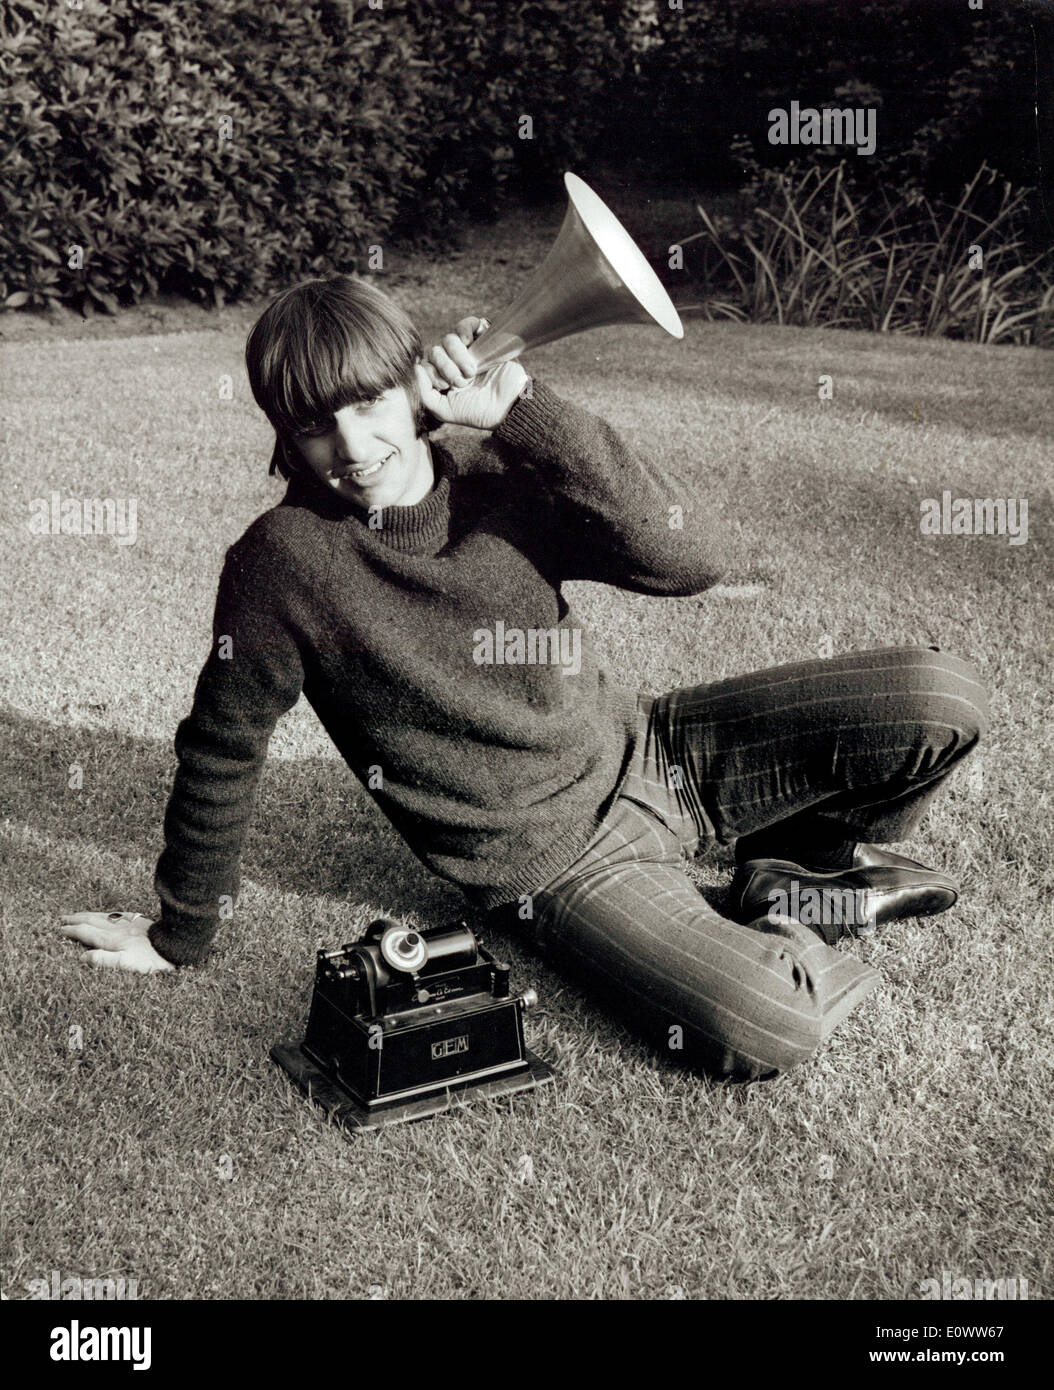 Beatles member Ringo Starr listening to an old megaphone recorder at his home - Stock Image